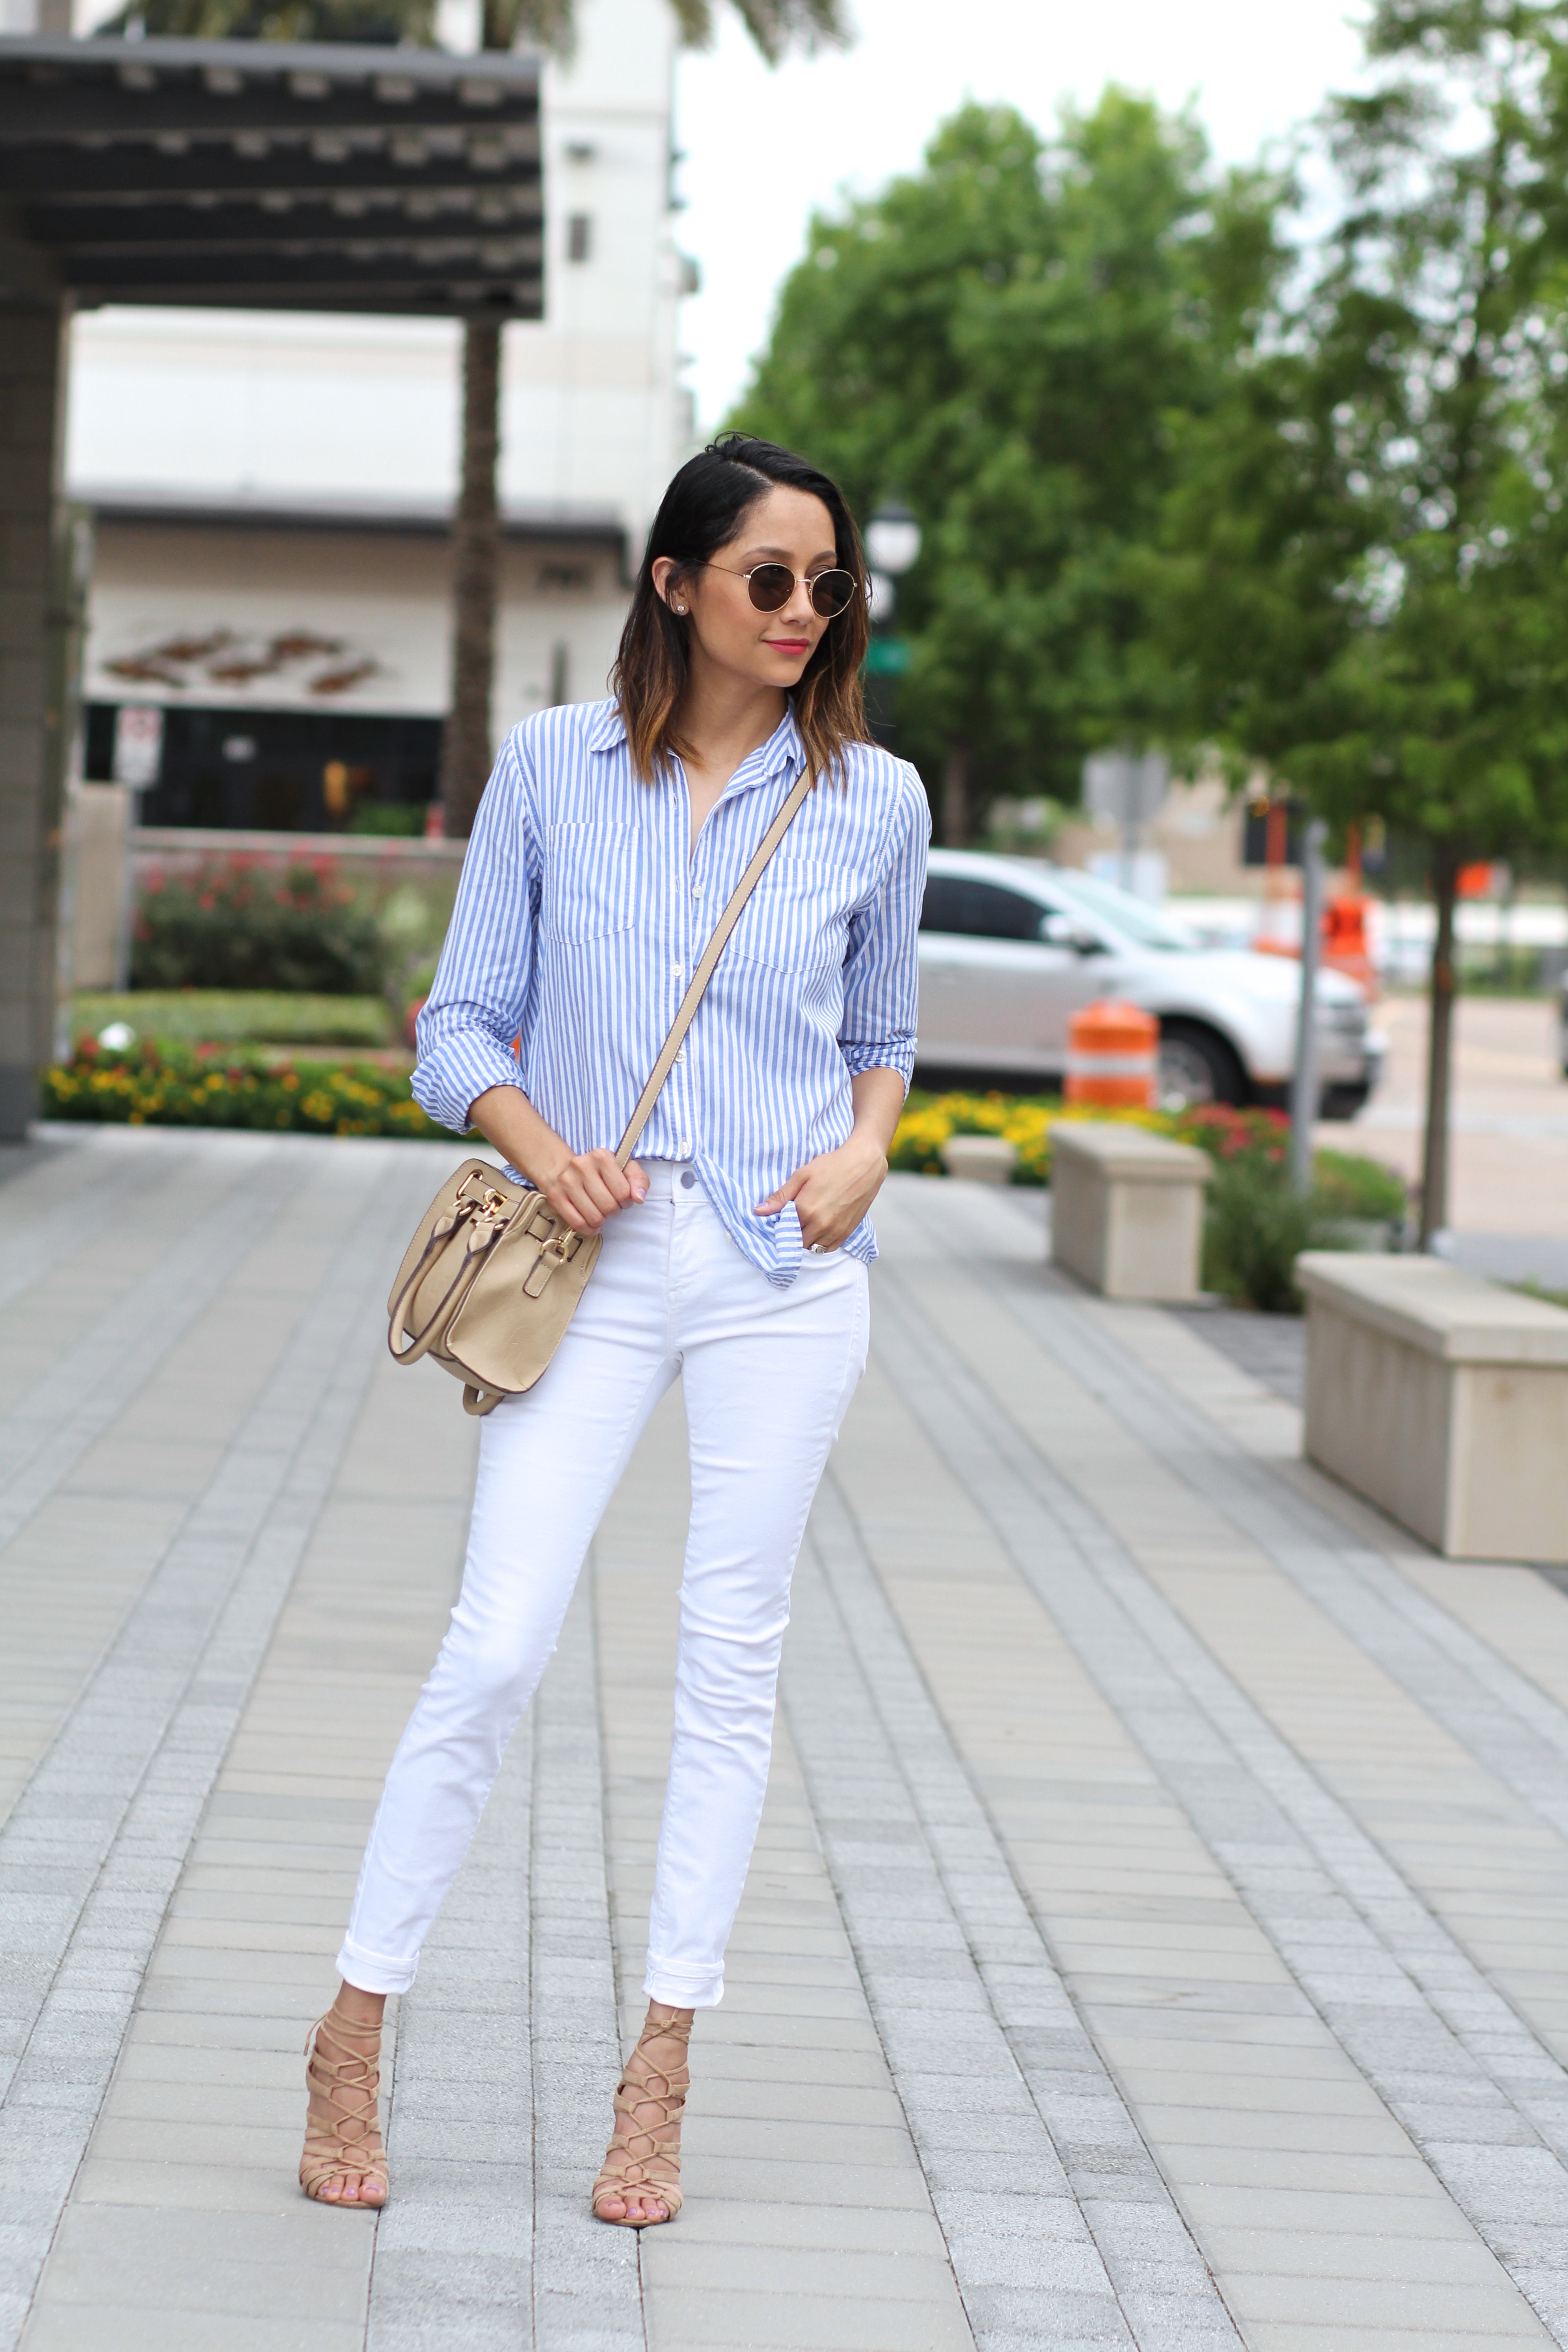 Vertical Stripes And White Jeans | White Jeans | Striped Shirt | Summer Look